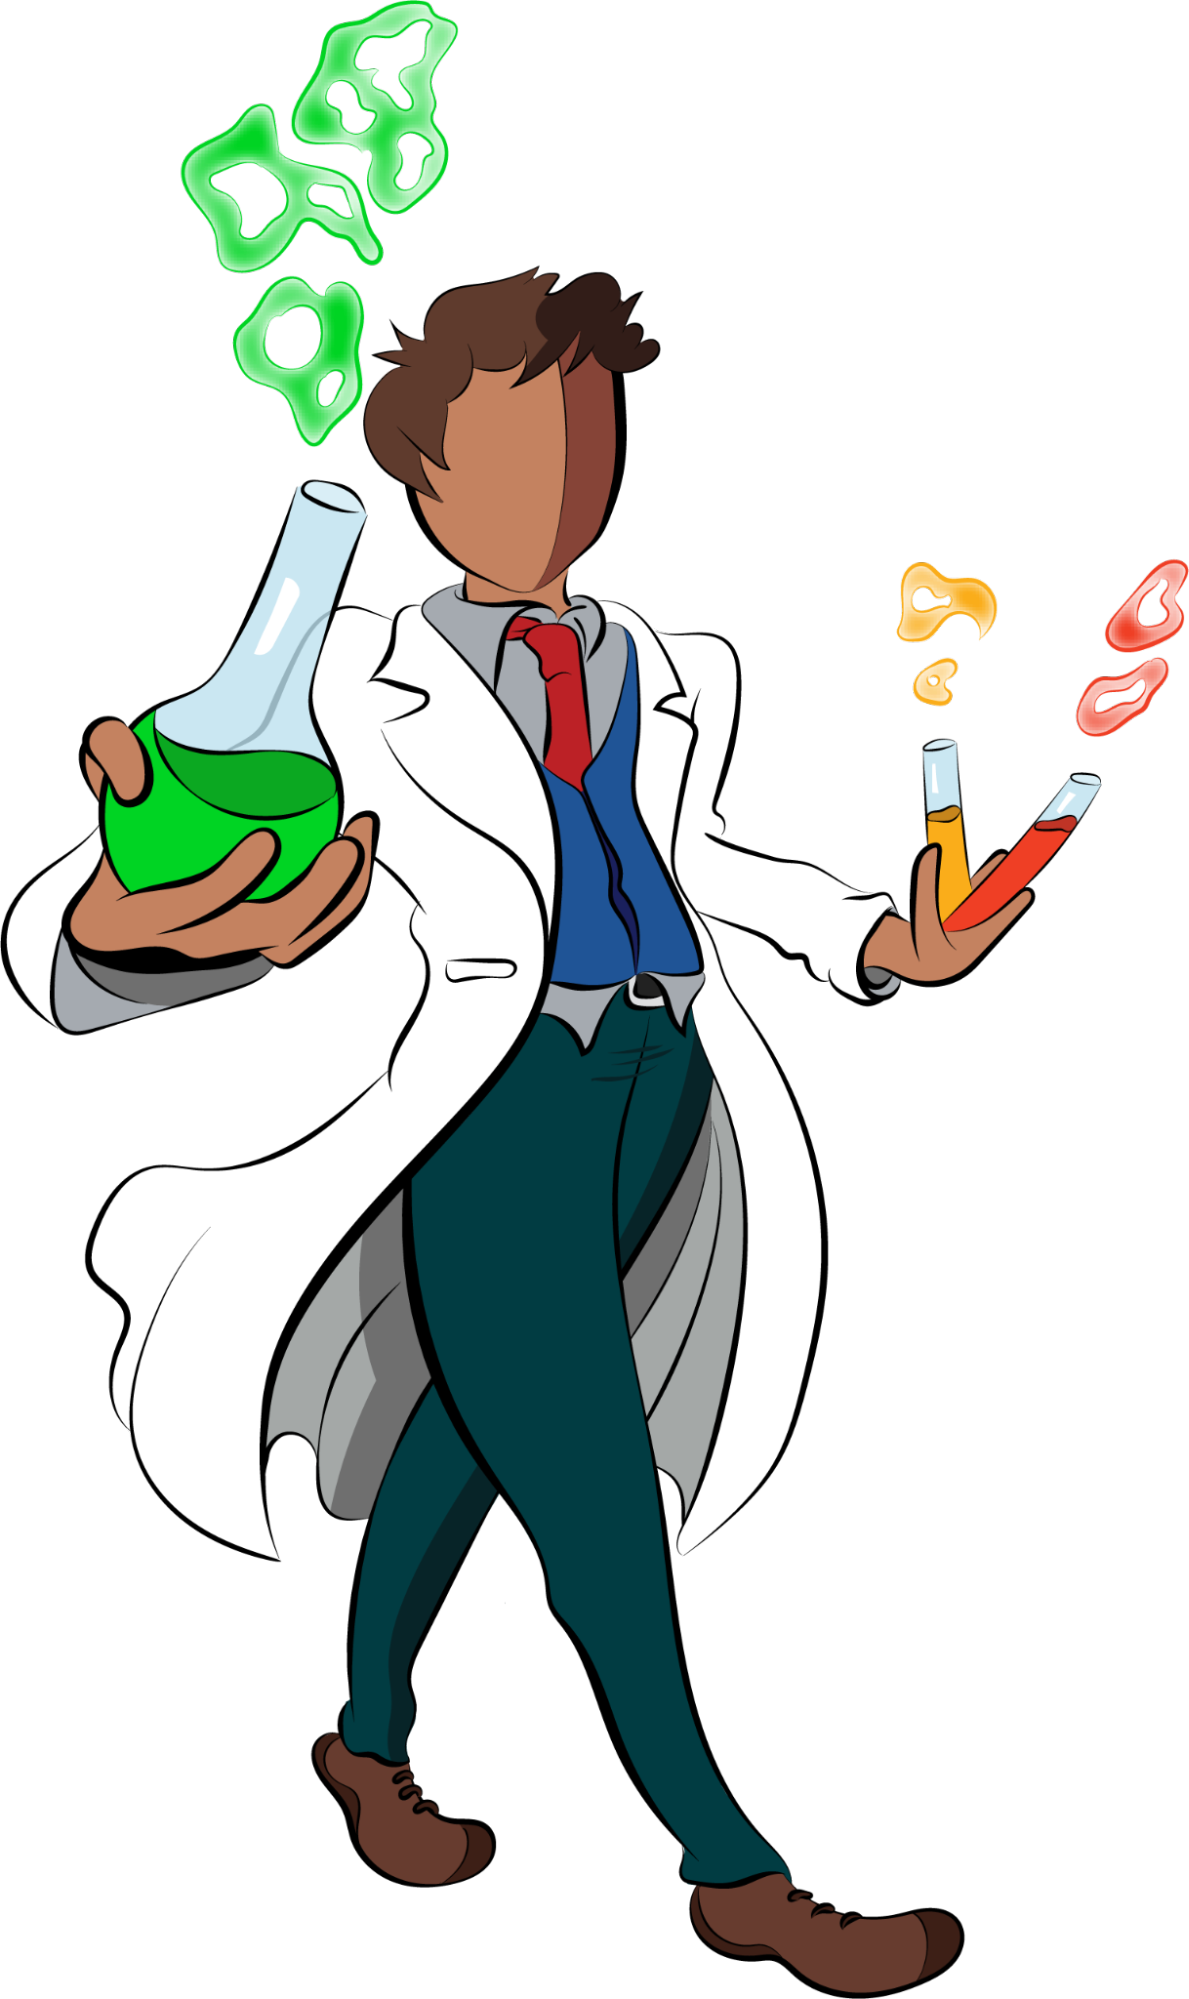 Hey look I'm a scientist and I'm carrying science things!